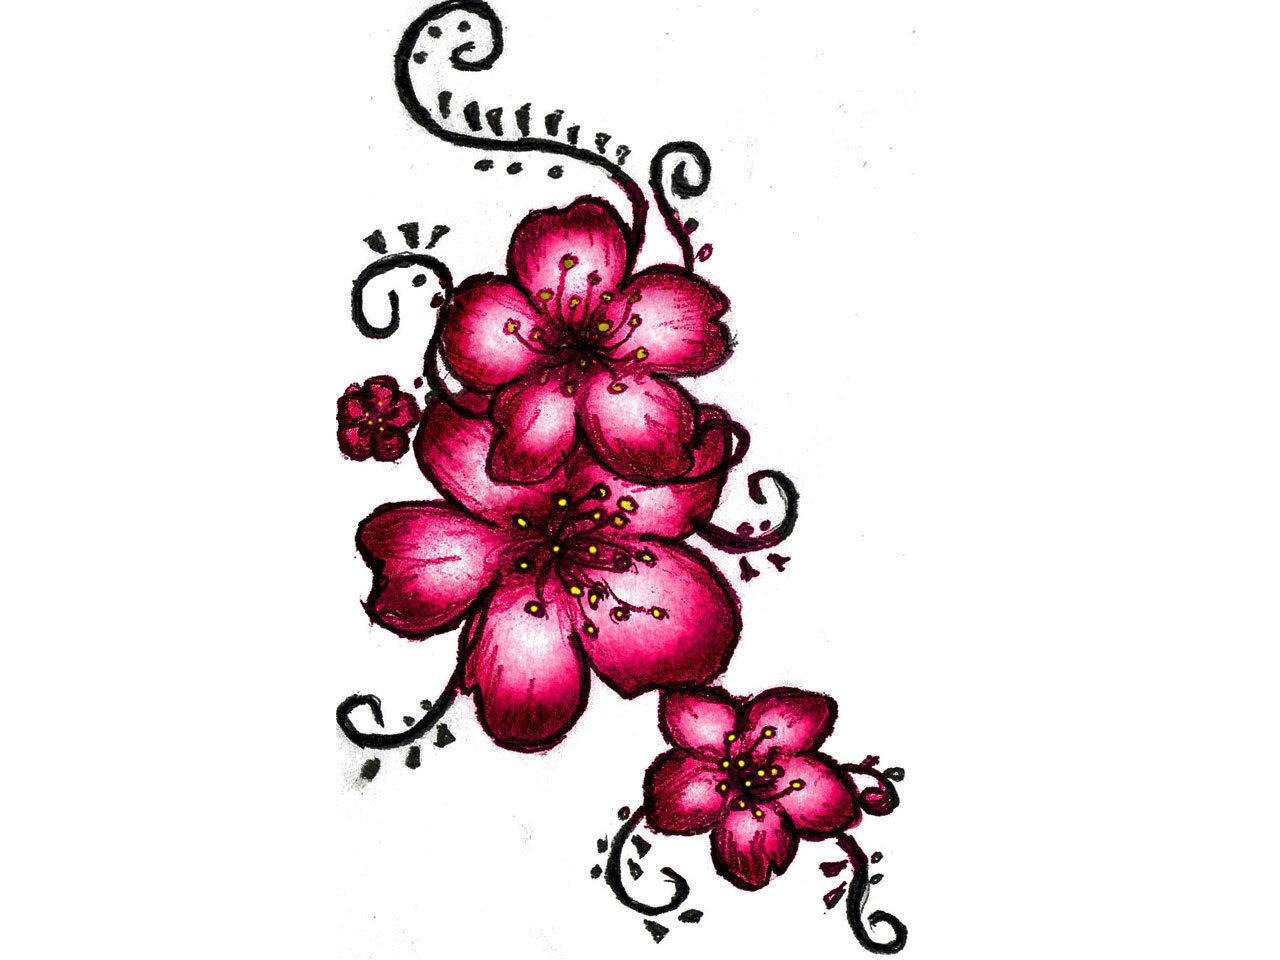 19 Cherry Blossom Designs Images